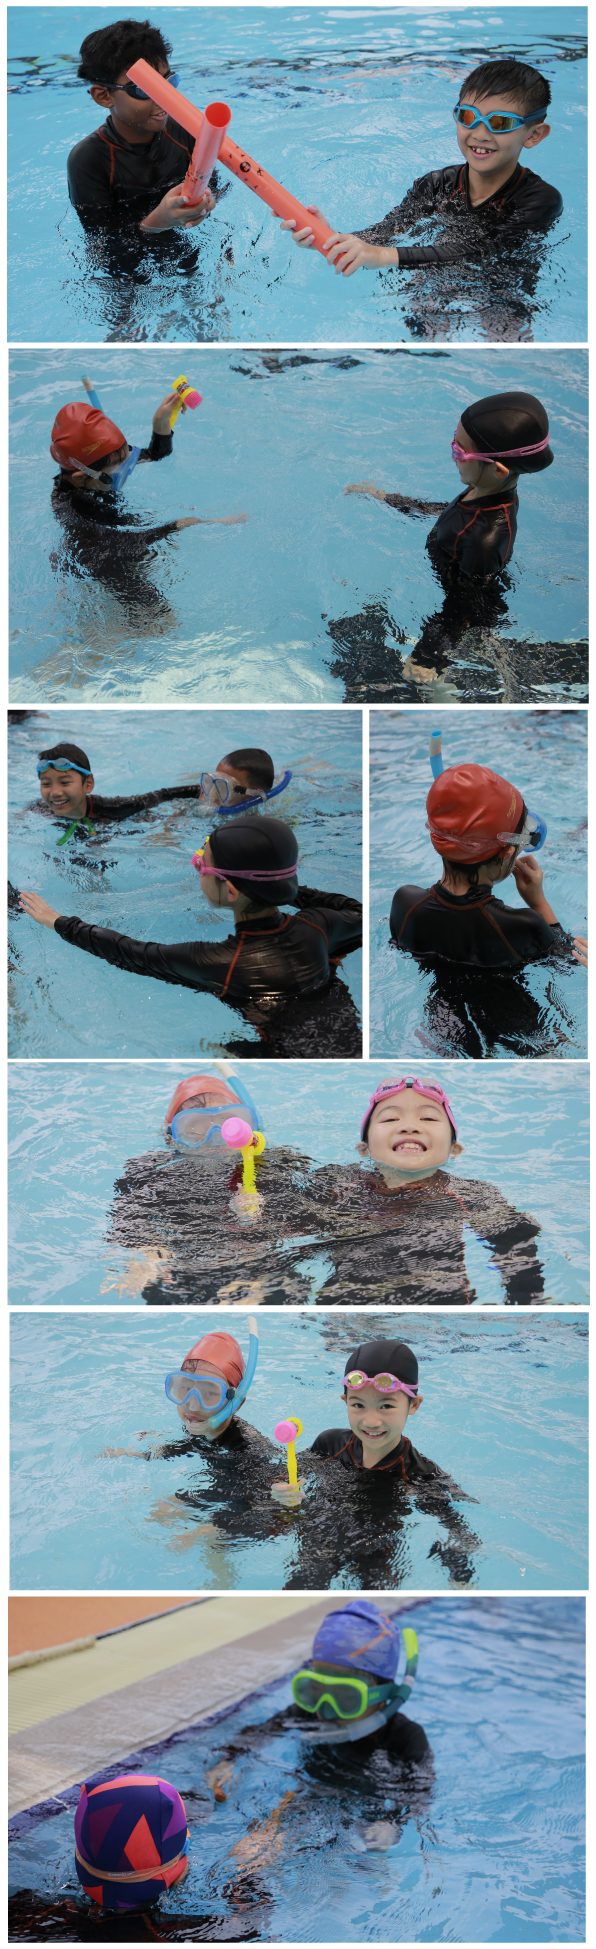 Year 4 learns about sound underwater